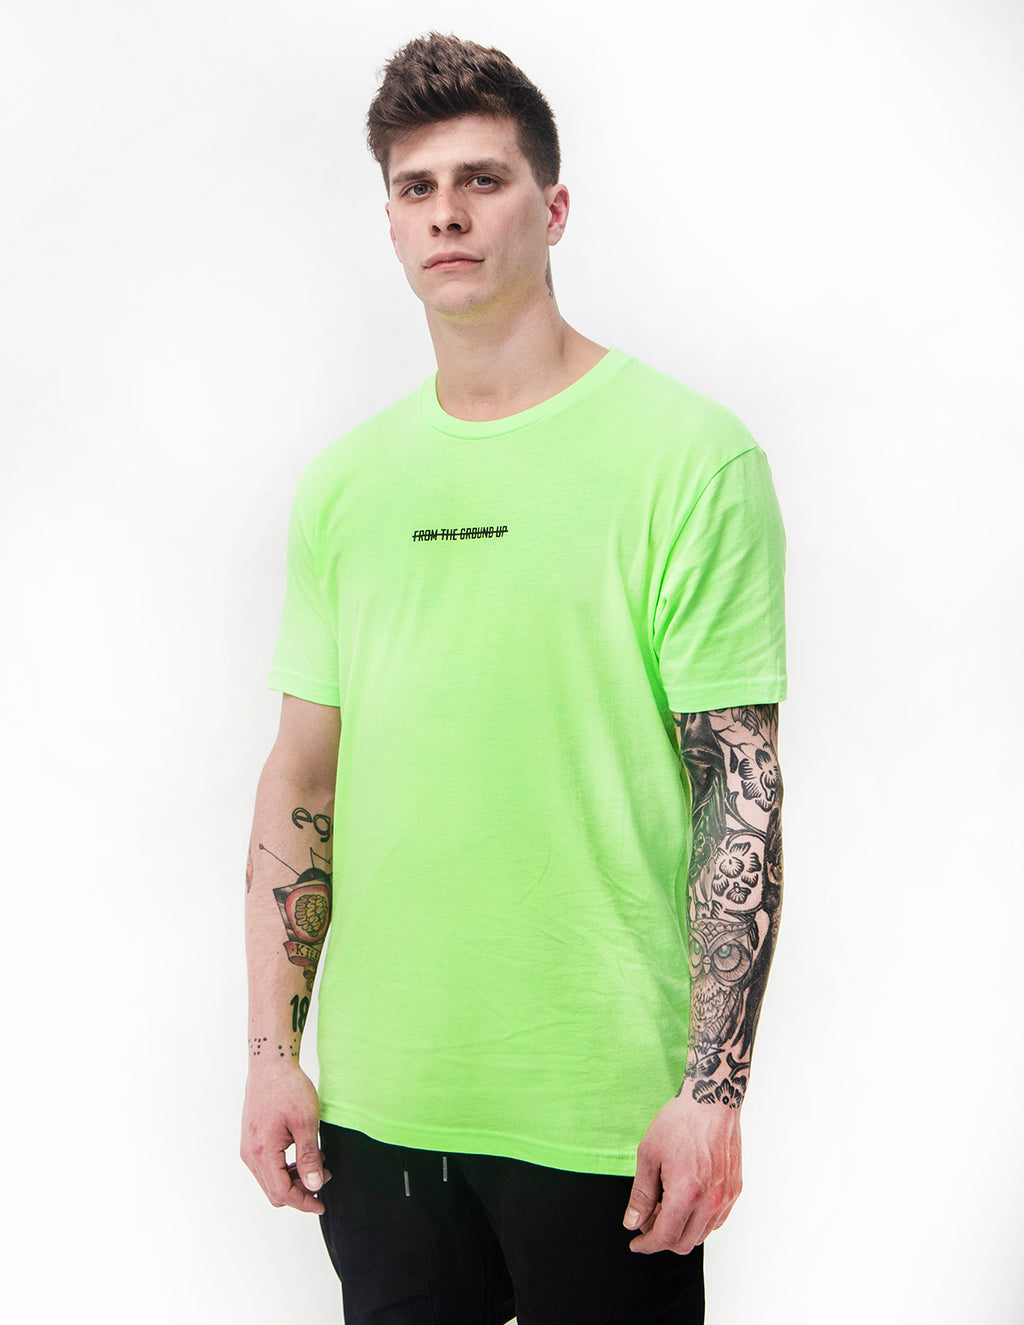 From The Ground Up Tee - Neon Green